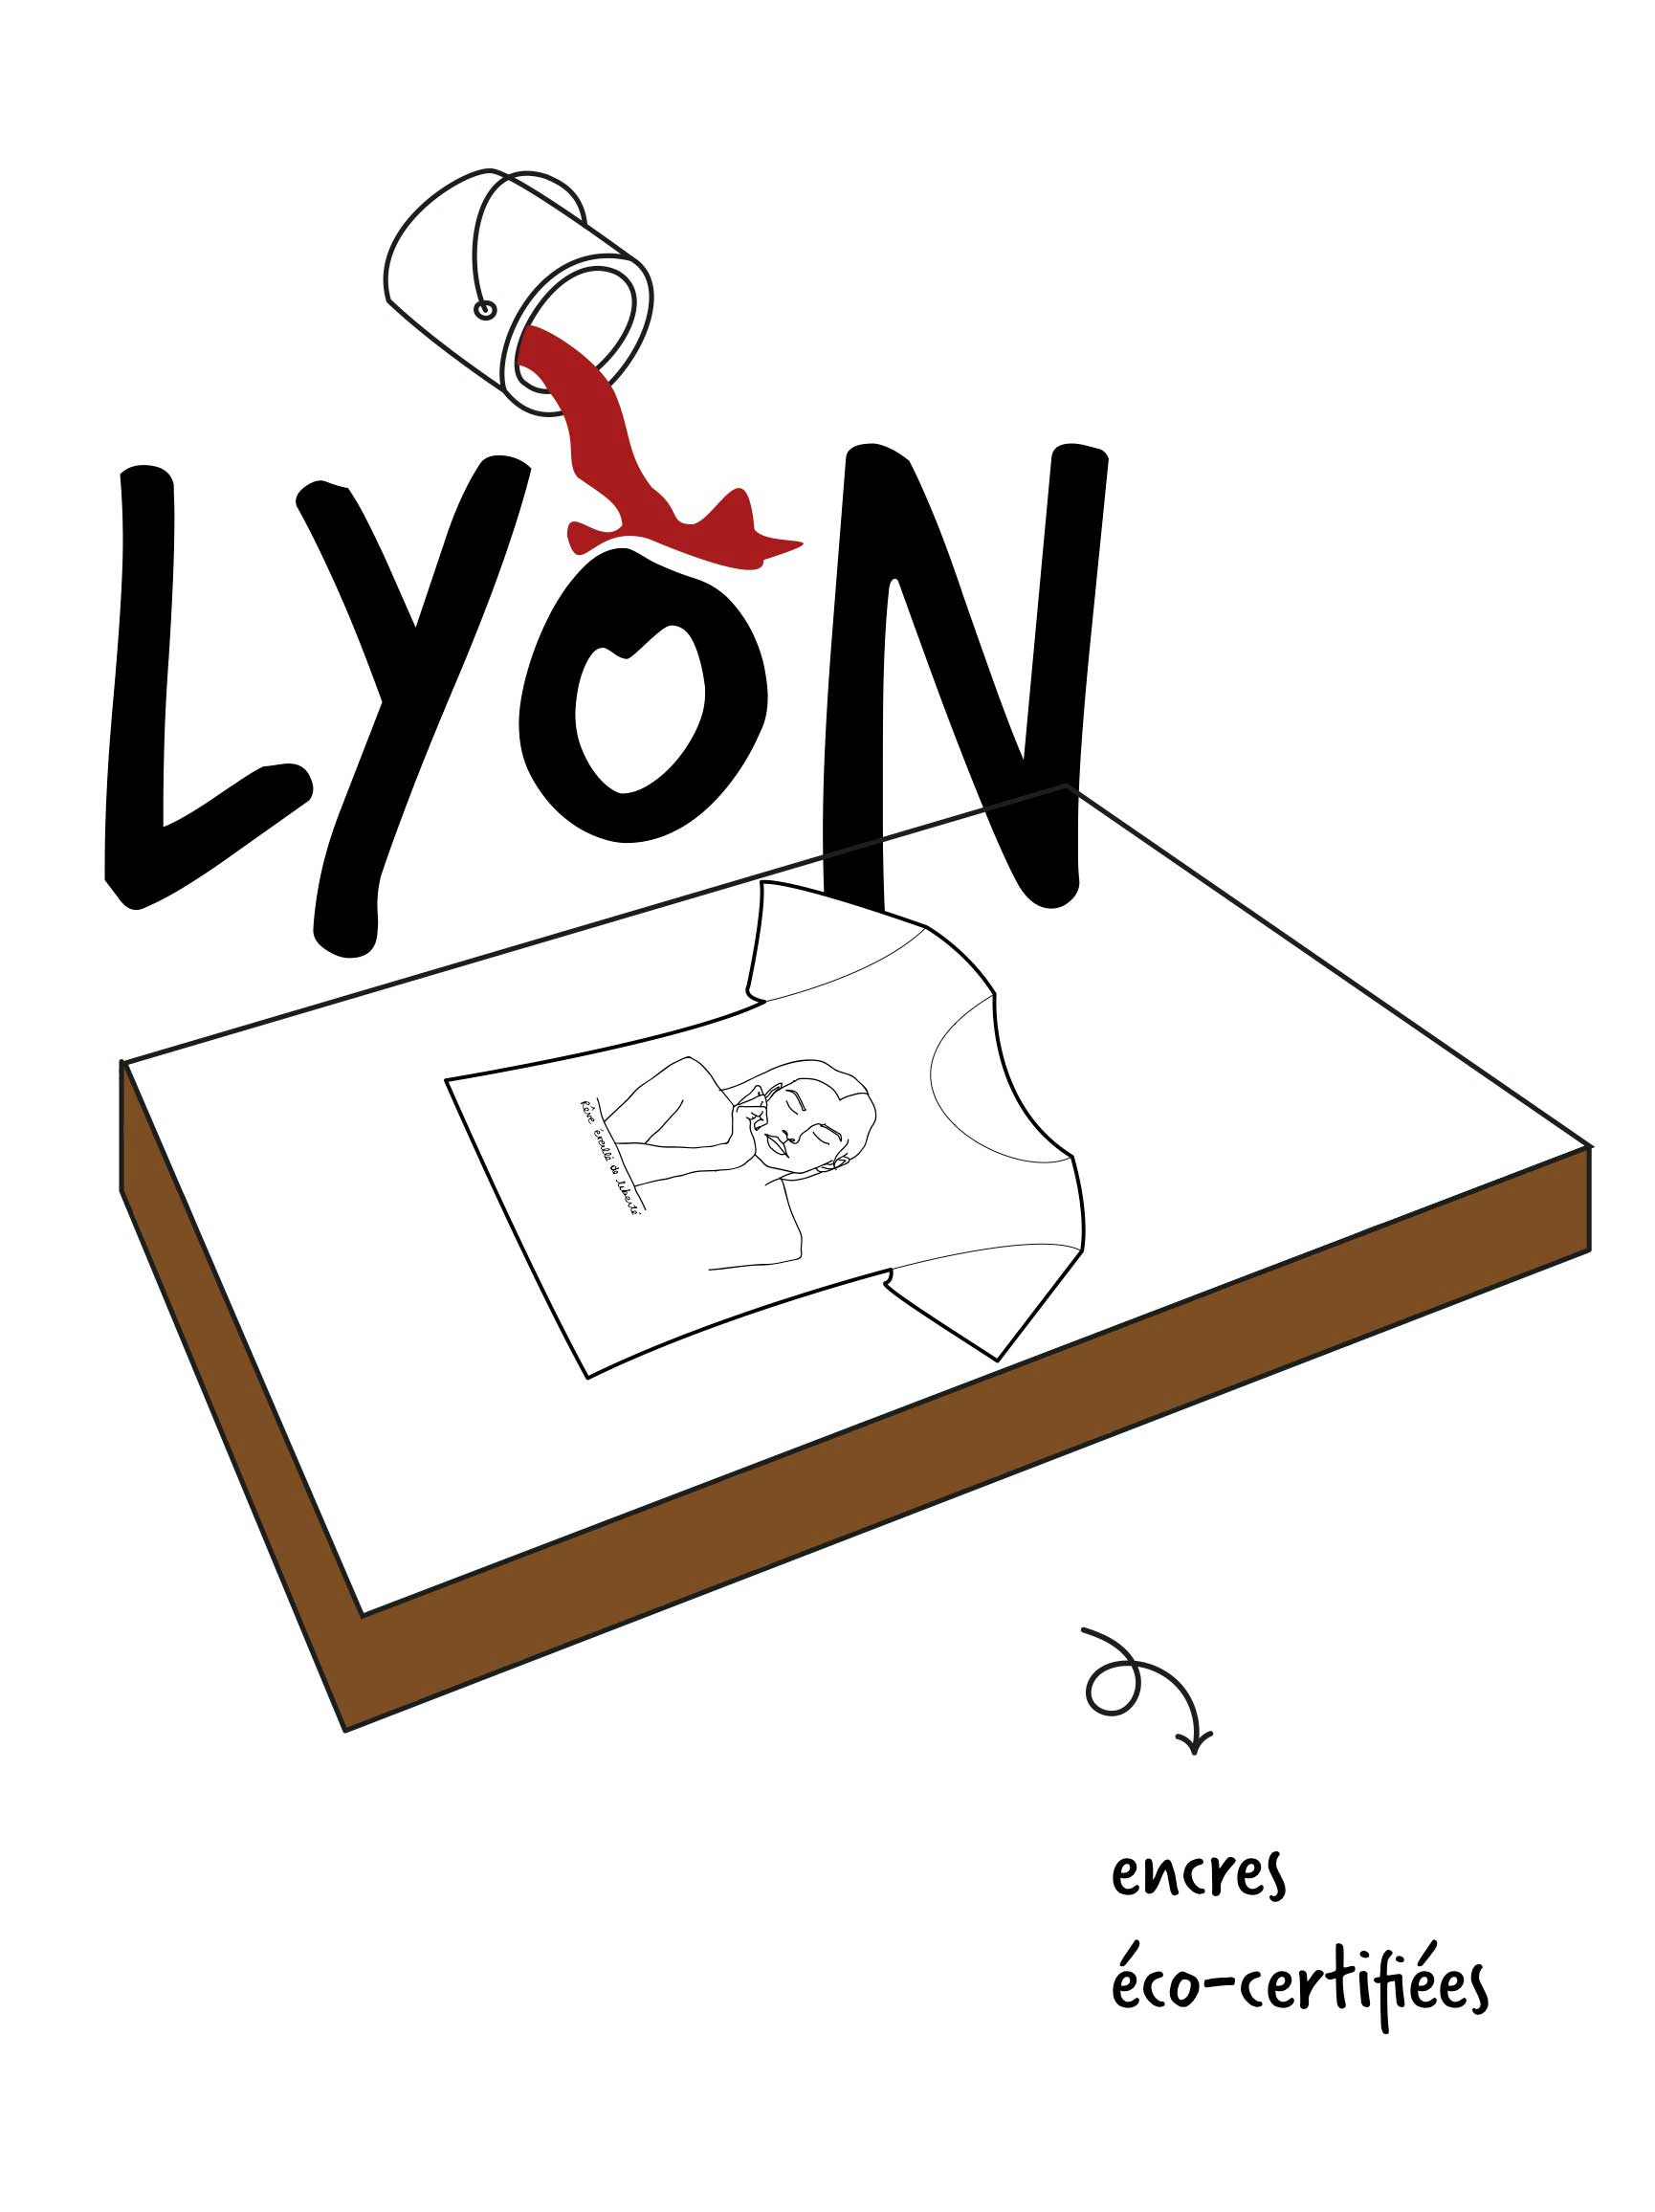 Illustration de l'impression éco-responsable et éthique d'un t-shirt Leonor Roversi à Lyon